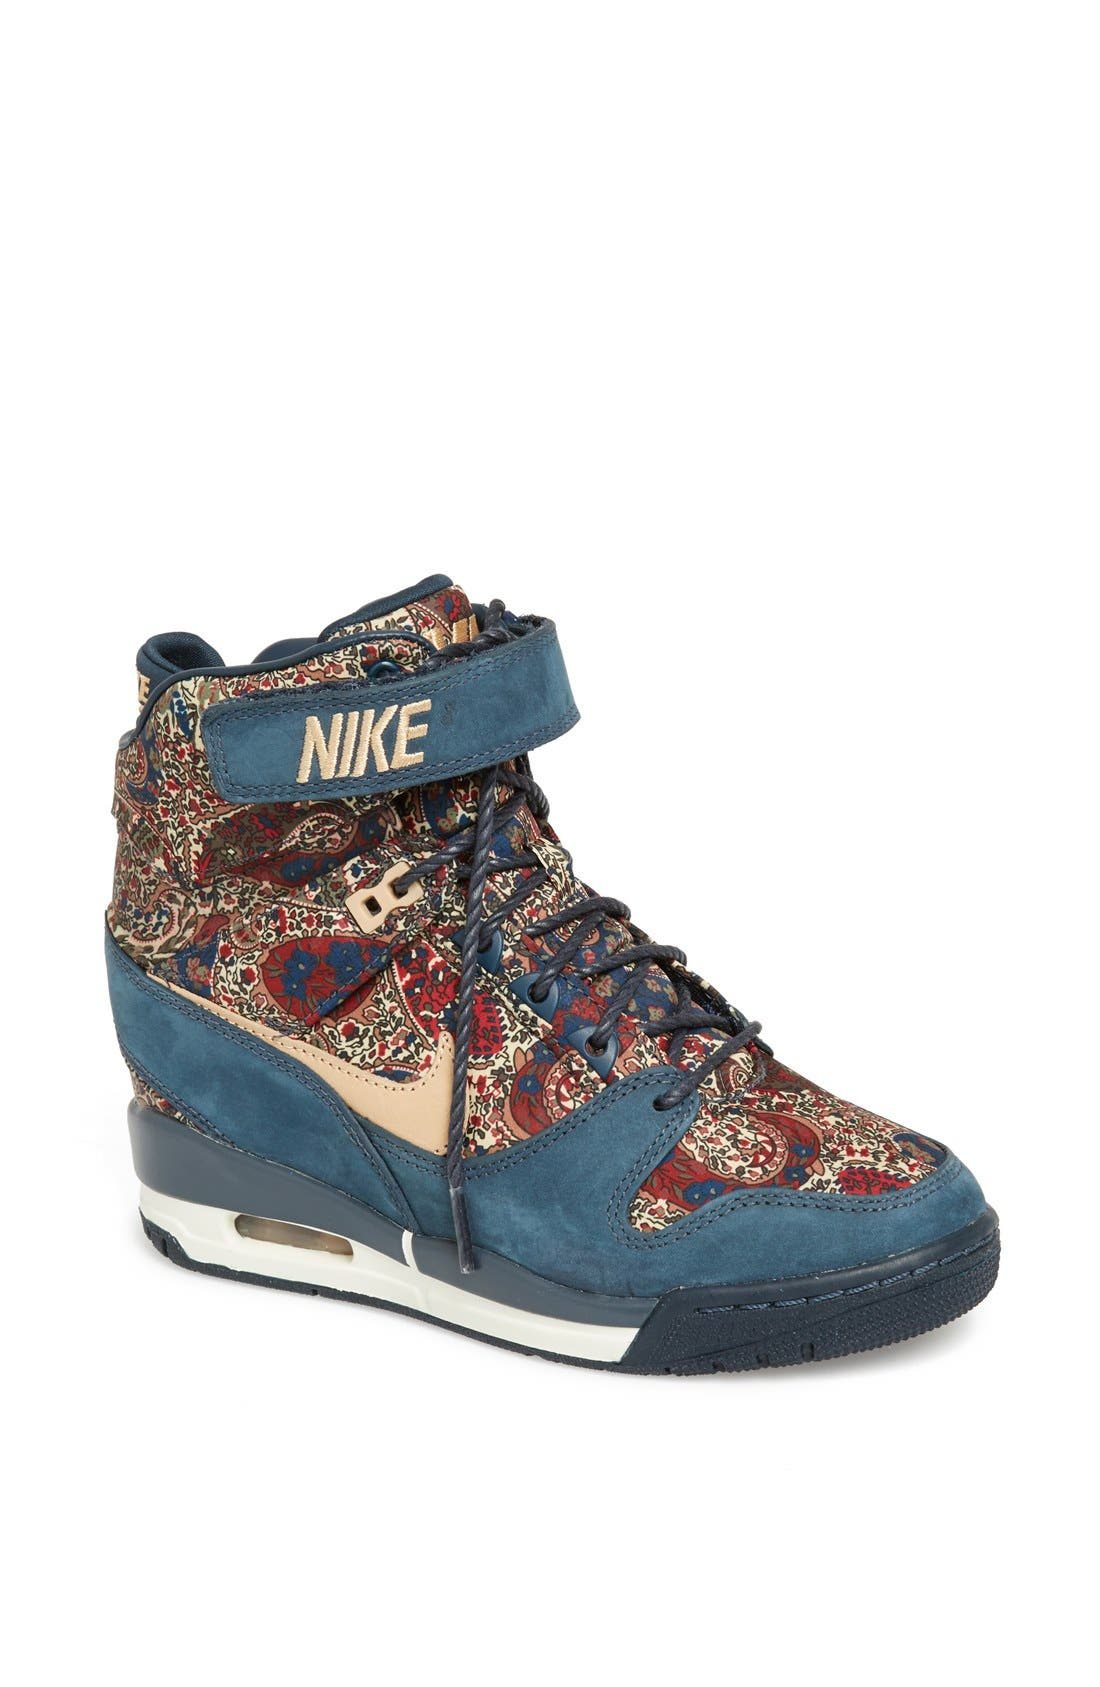 Alternate Image 1 Selected - Nike 'Air Revolution Sky Hi Liberty' Wedge Sneaker (Women)